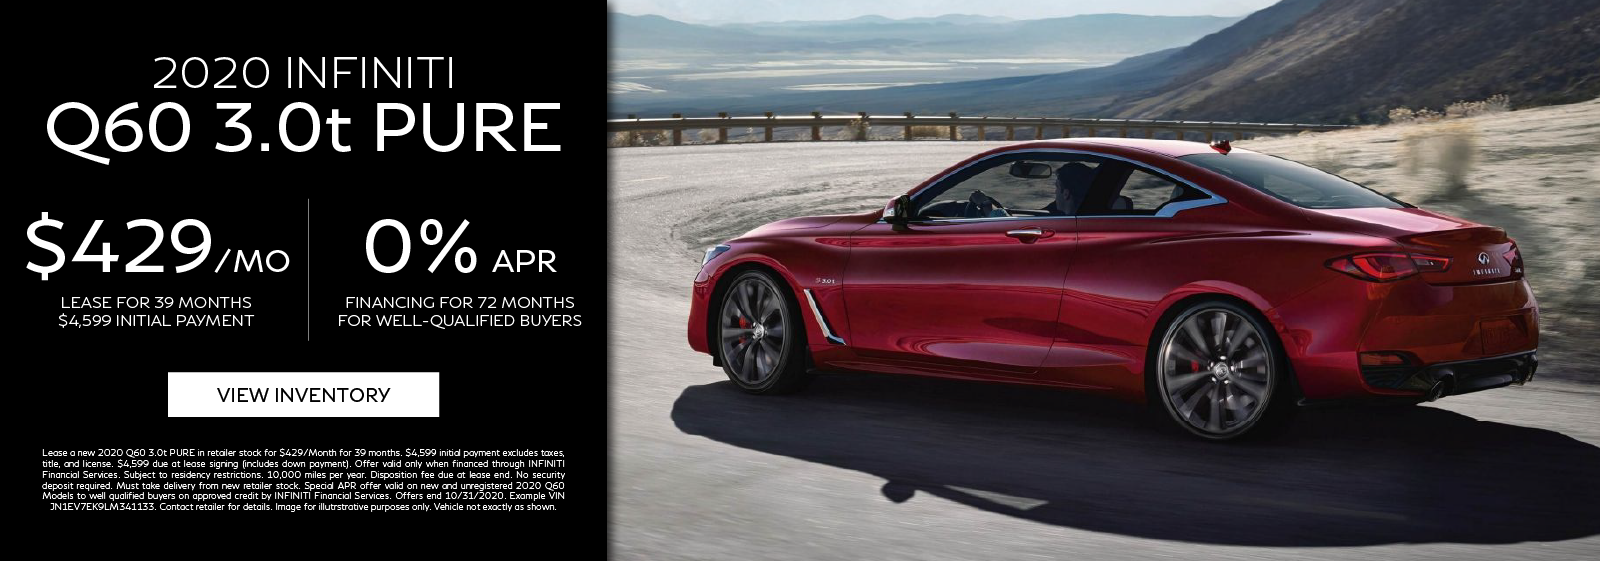 Lease a new 2020 Q60 3.0t PURE for $429 per month for 39 months or get 0% APR for 72 months. Click to view inventory.